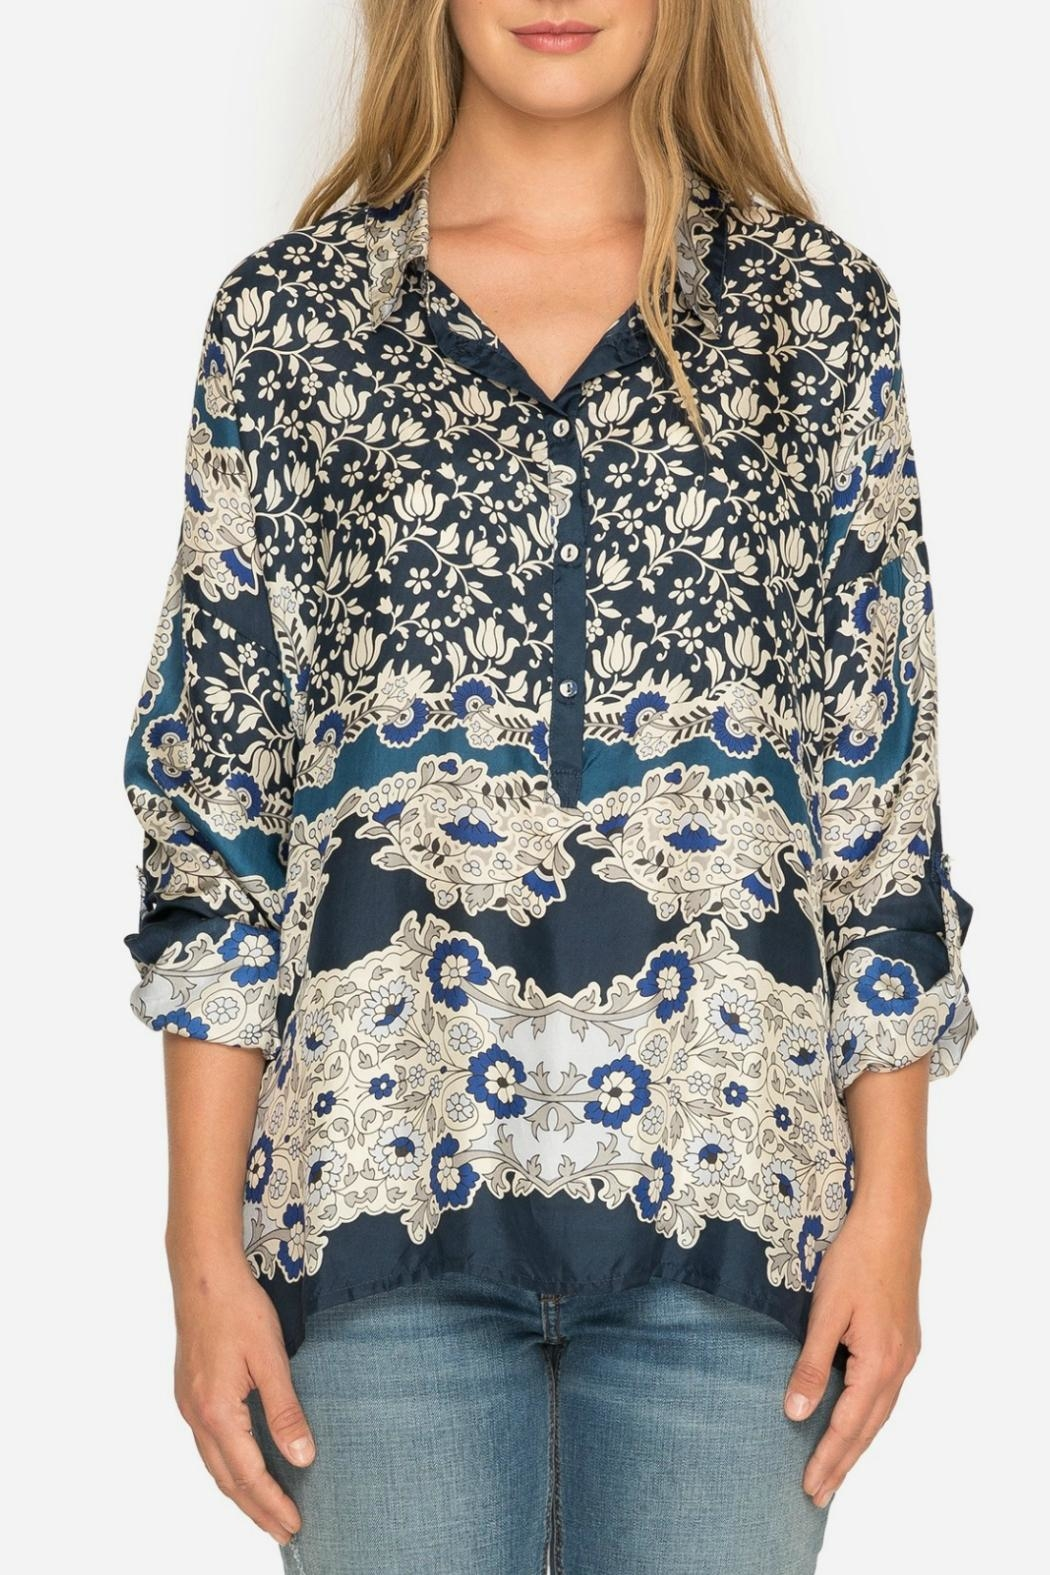 Johnny Was Wishing Print Blouse - Front Full Image